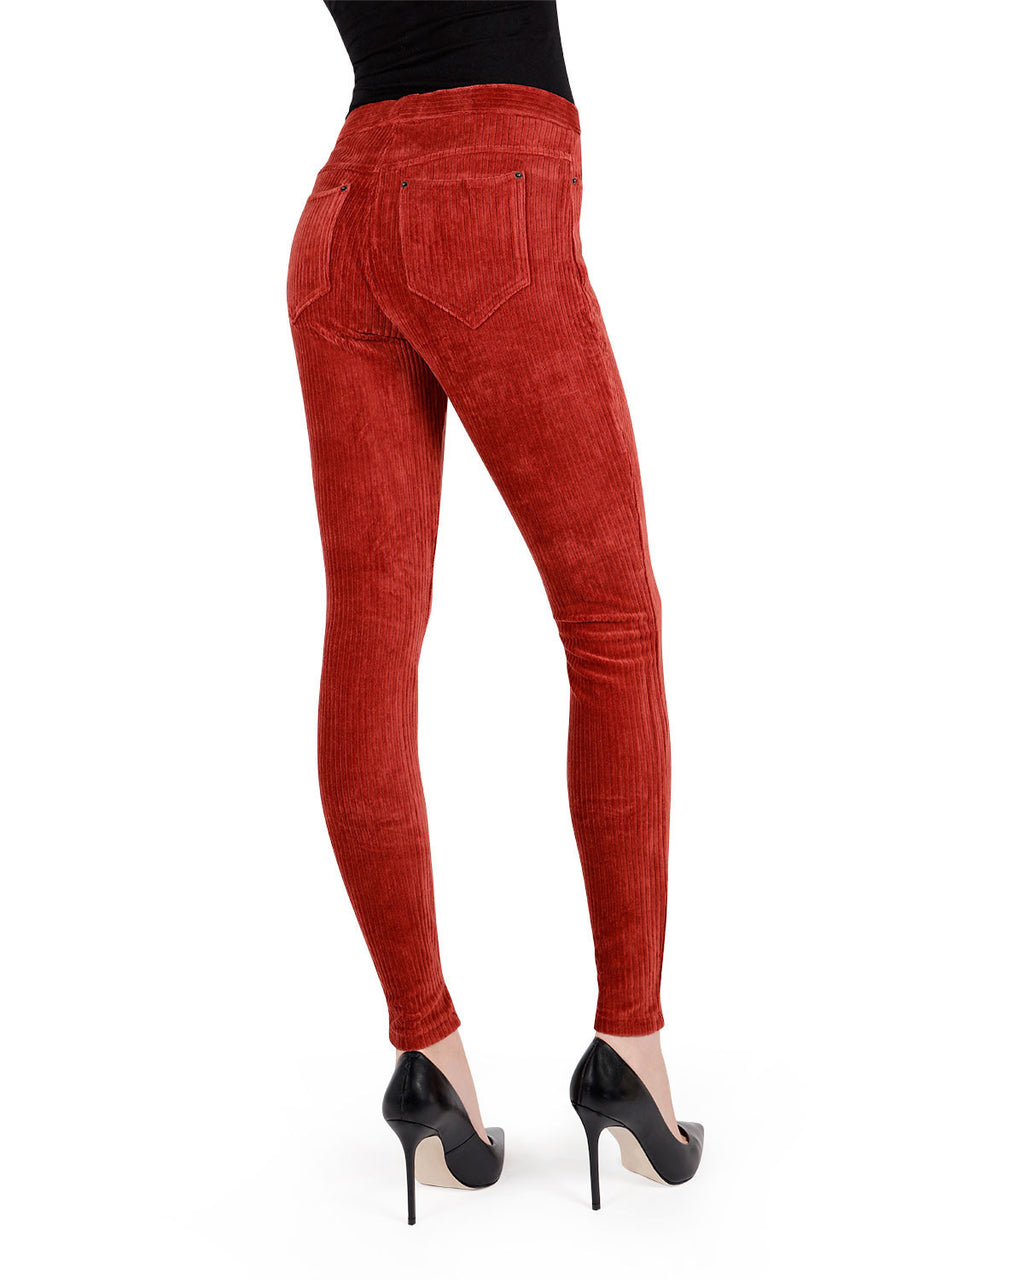 Memoi Fired Brick Royal Ease Wide-Rib Corduroy Legging | Women's Premium Stretch Corduroy Leggings Stretch